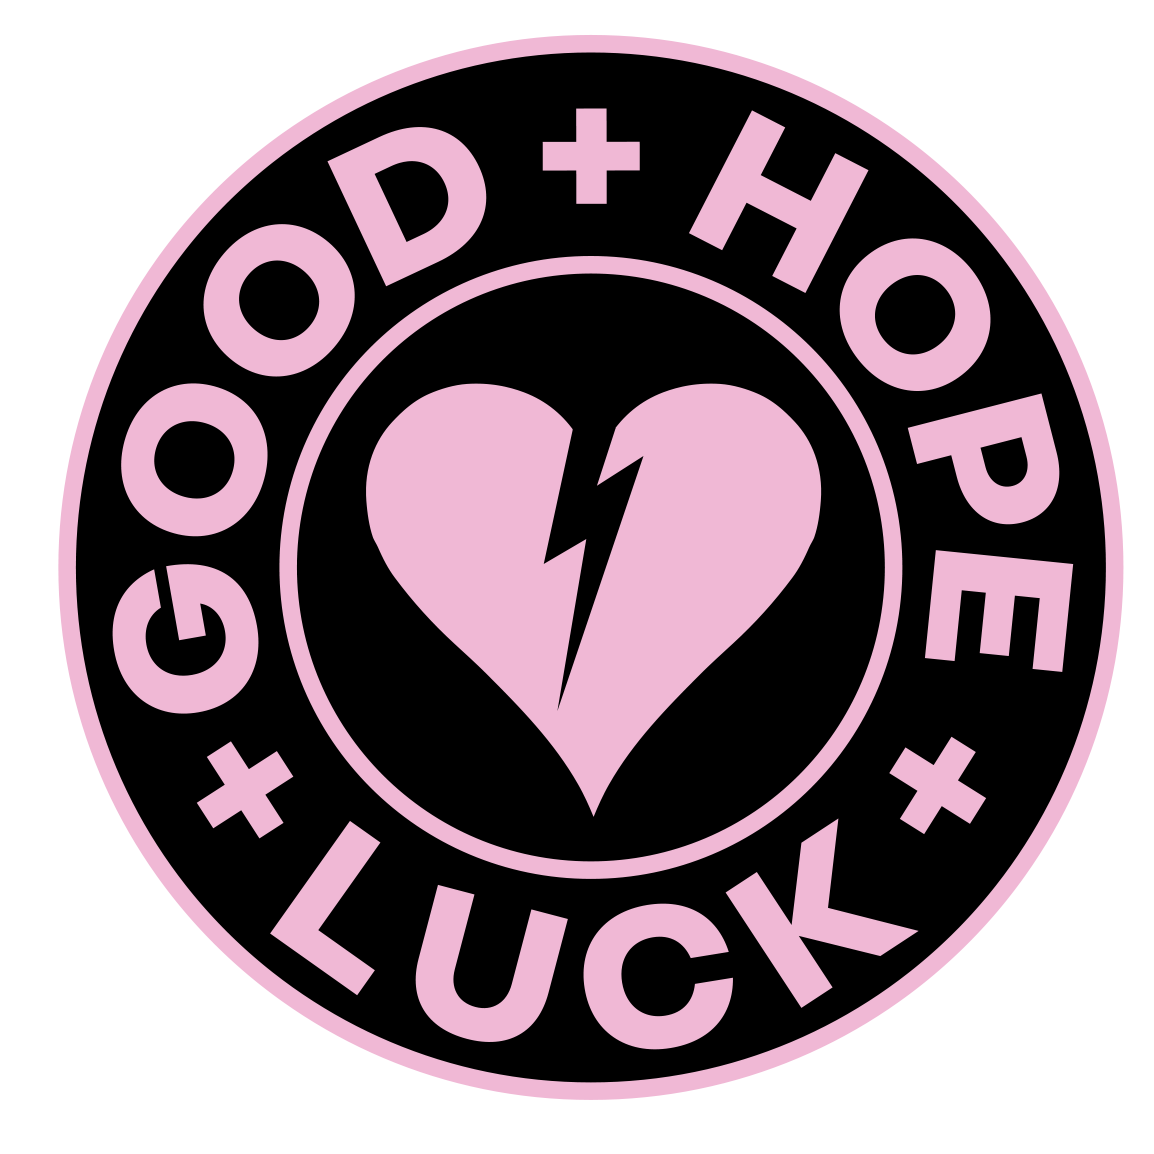 Good Hope & Luck